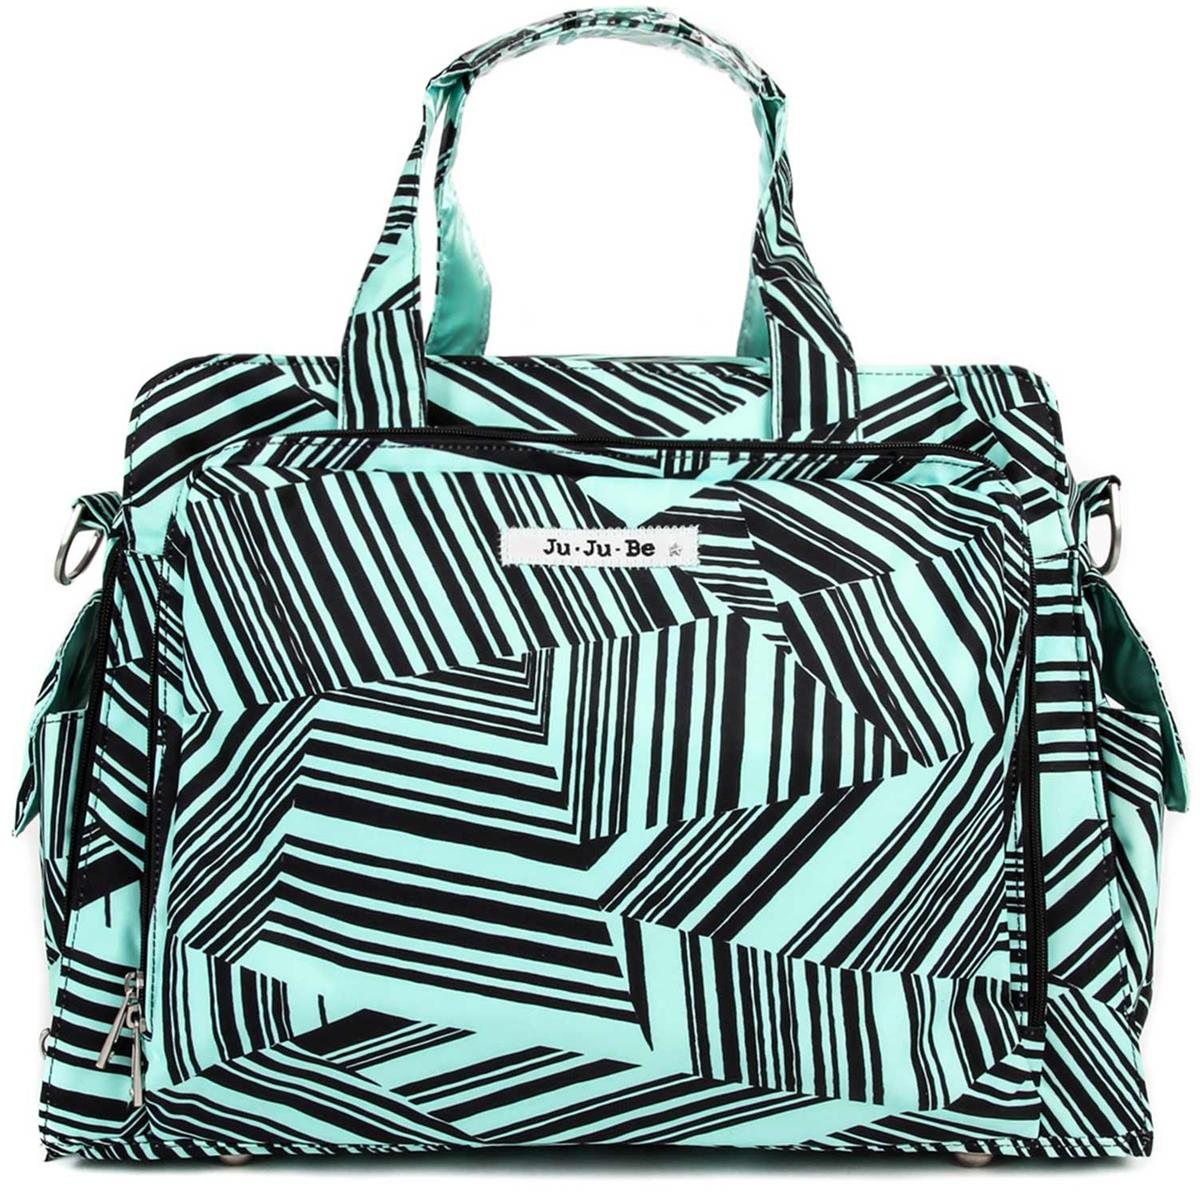 jujube diaper bag be prepared - mint chip